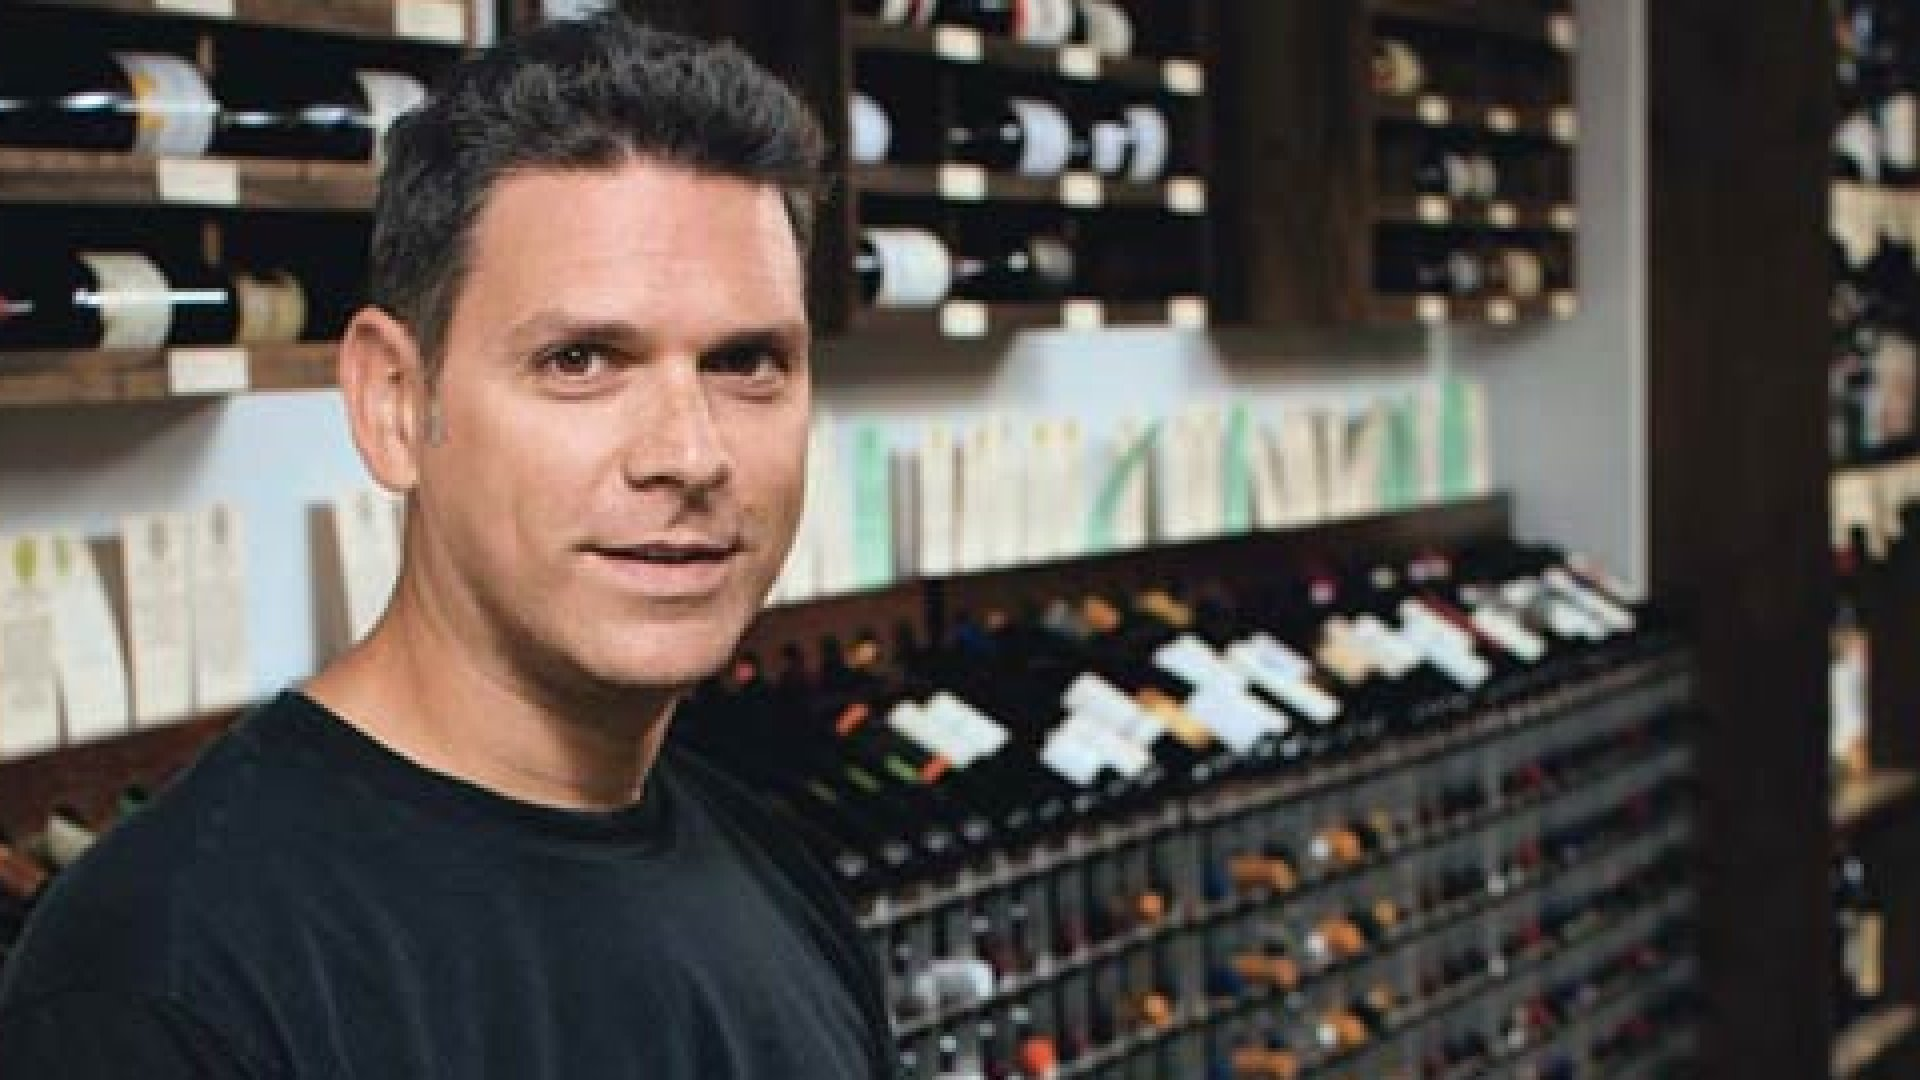 <strong>Pour <em>Vous</em></strong> Jason Richelson uses ShopKeep to manage The Greene Grape's loyalty program. After customers spend $400 on wine, they get a $20 coupon.